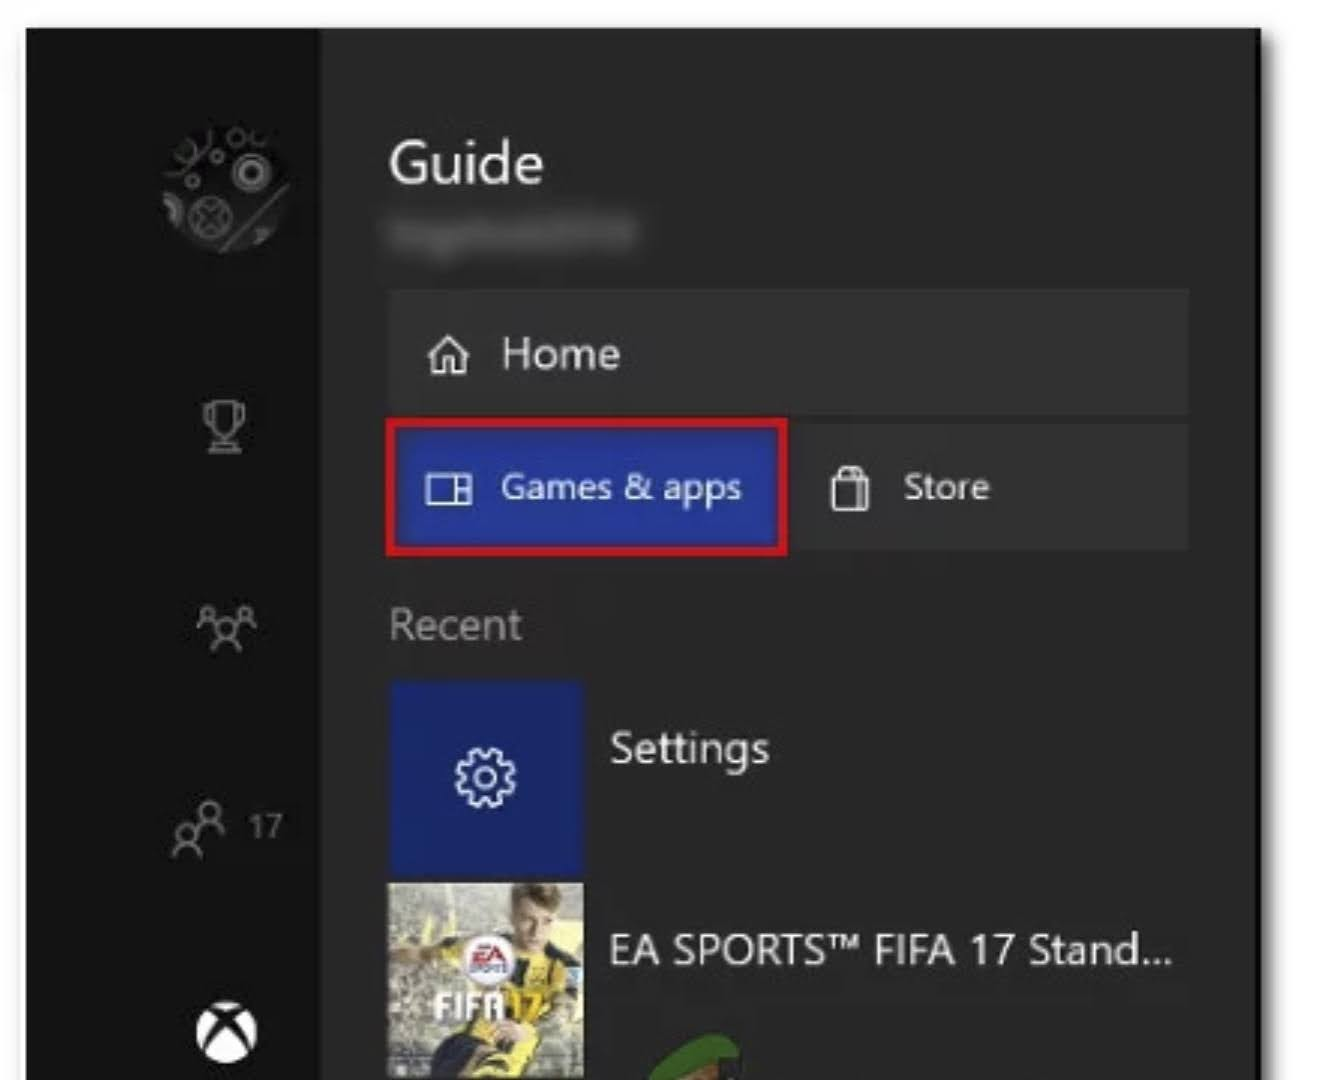 Go to Home > My games & Apps menu > select Roblox.